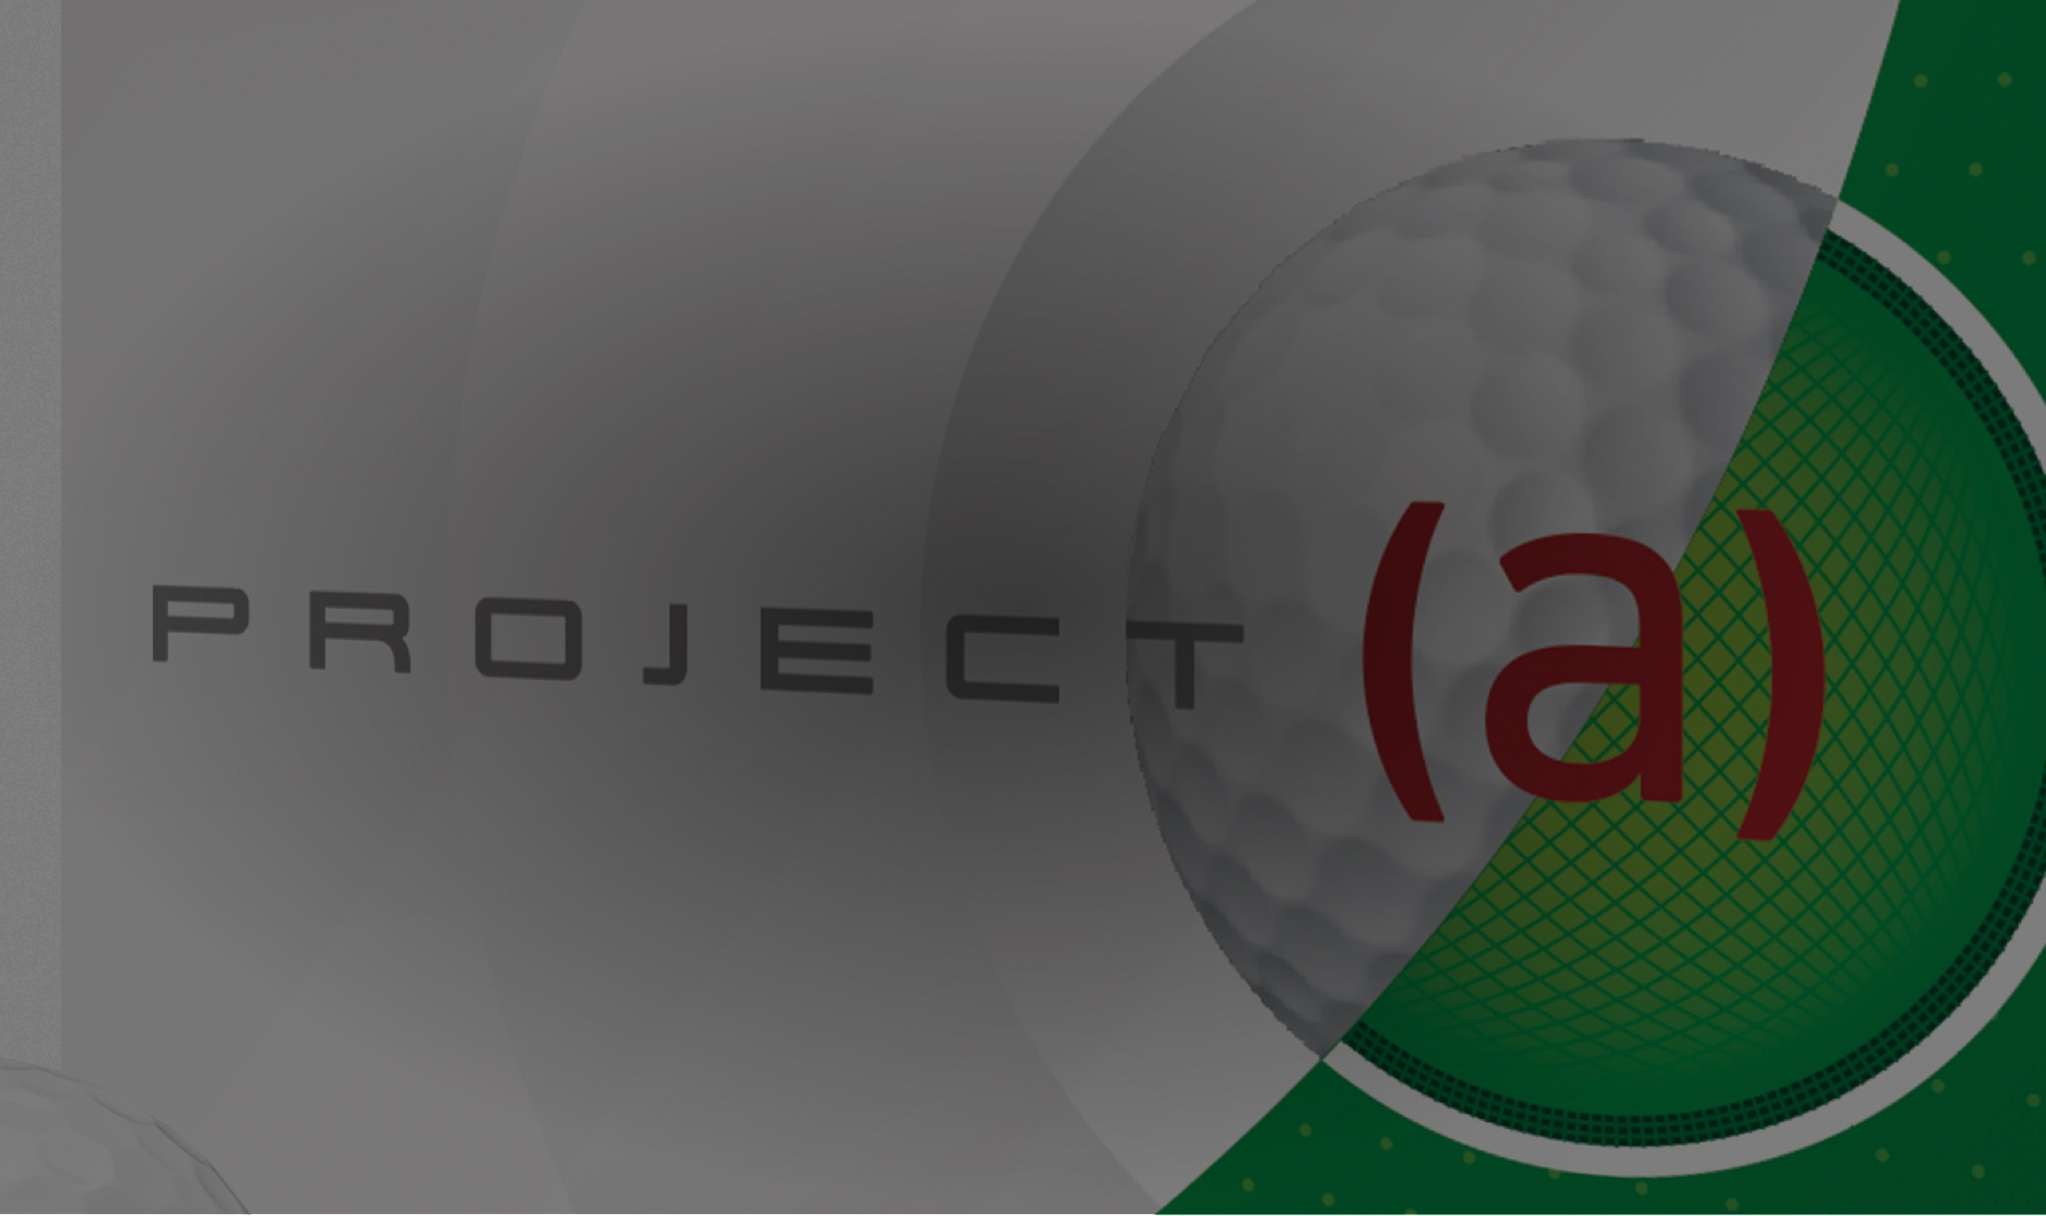 PROJECT (a)